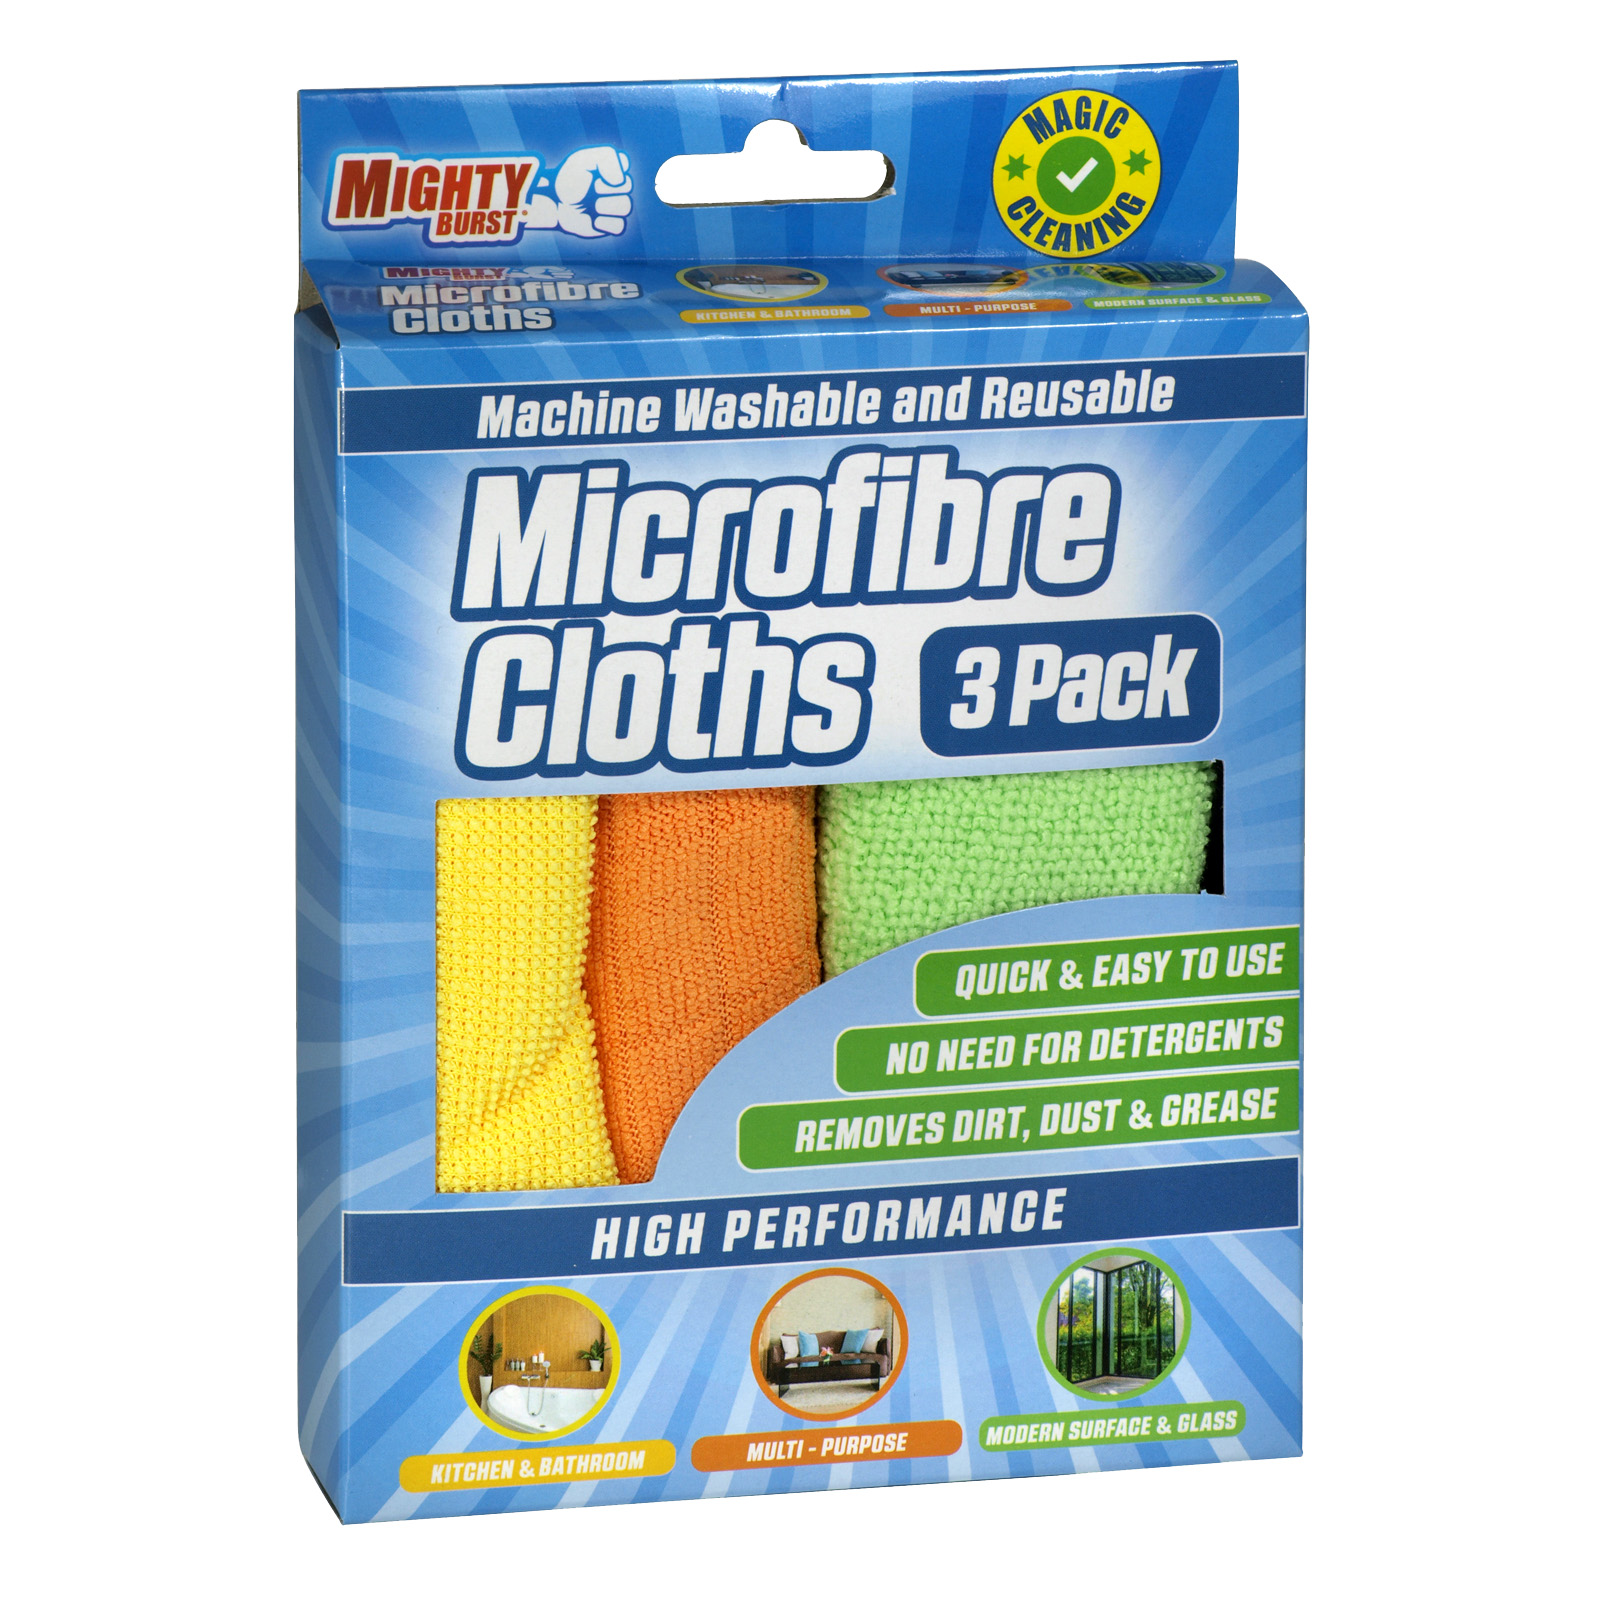 AIRPURE MICROFIBRE CLOTHS 3PK X12